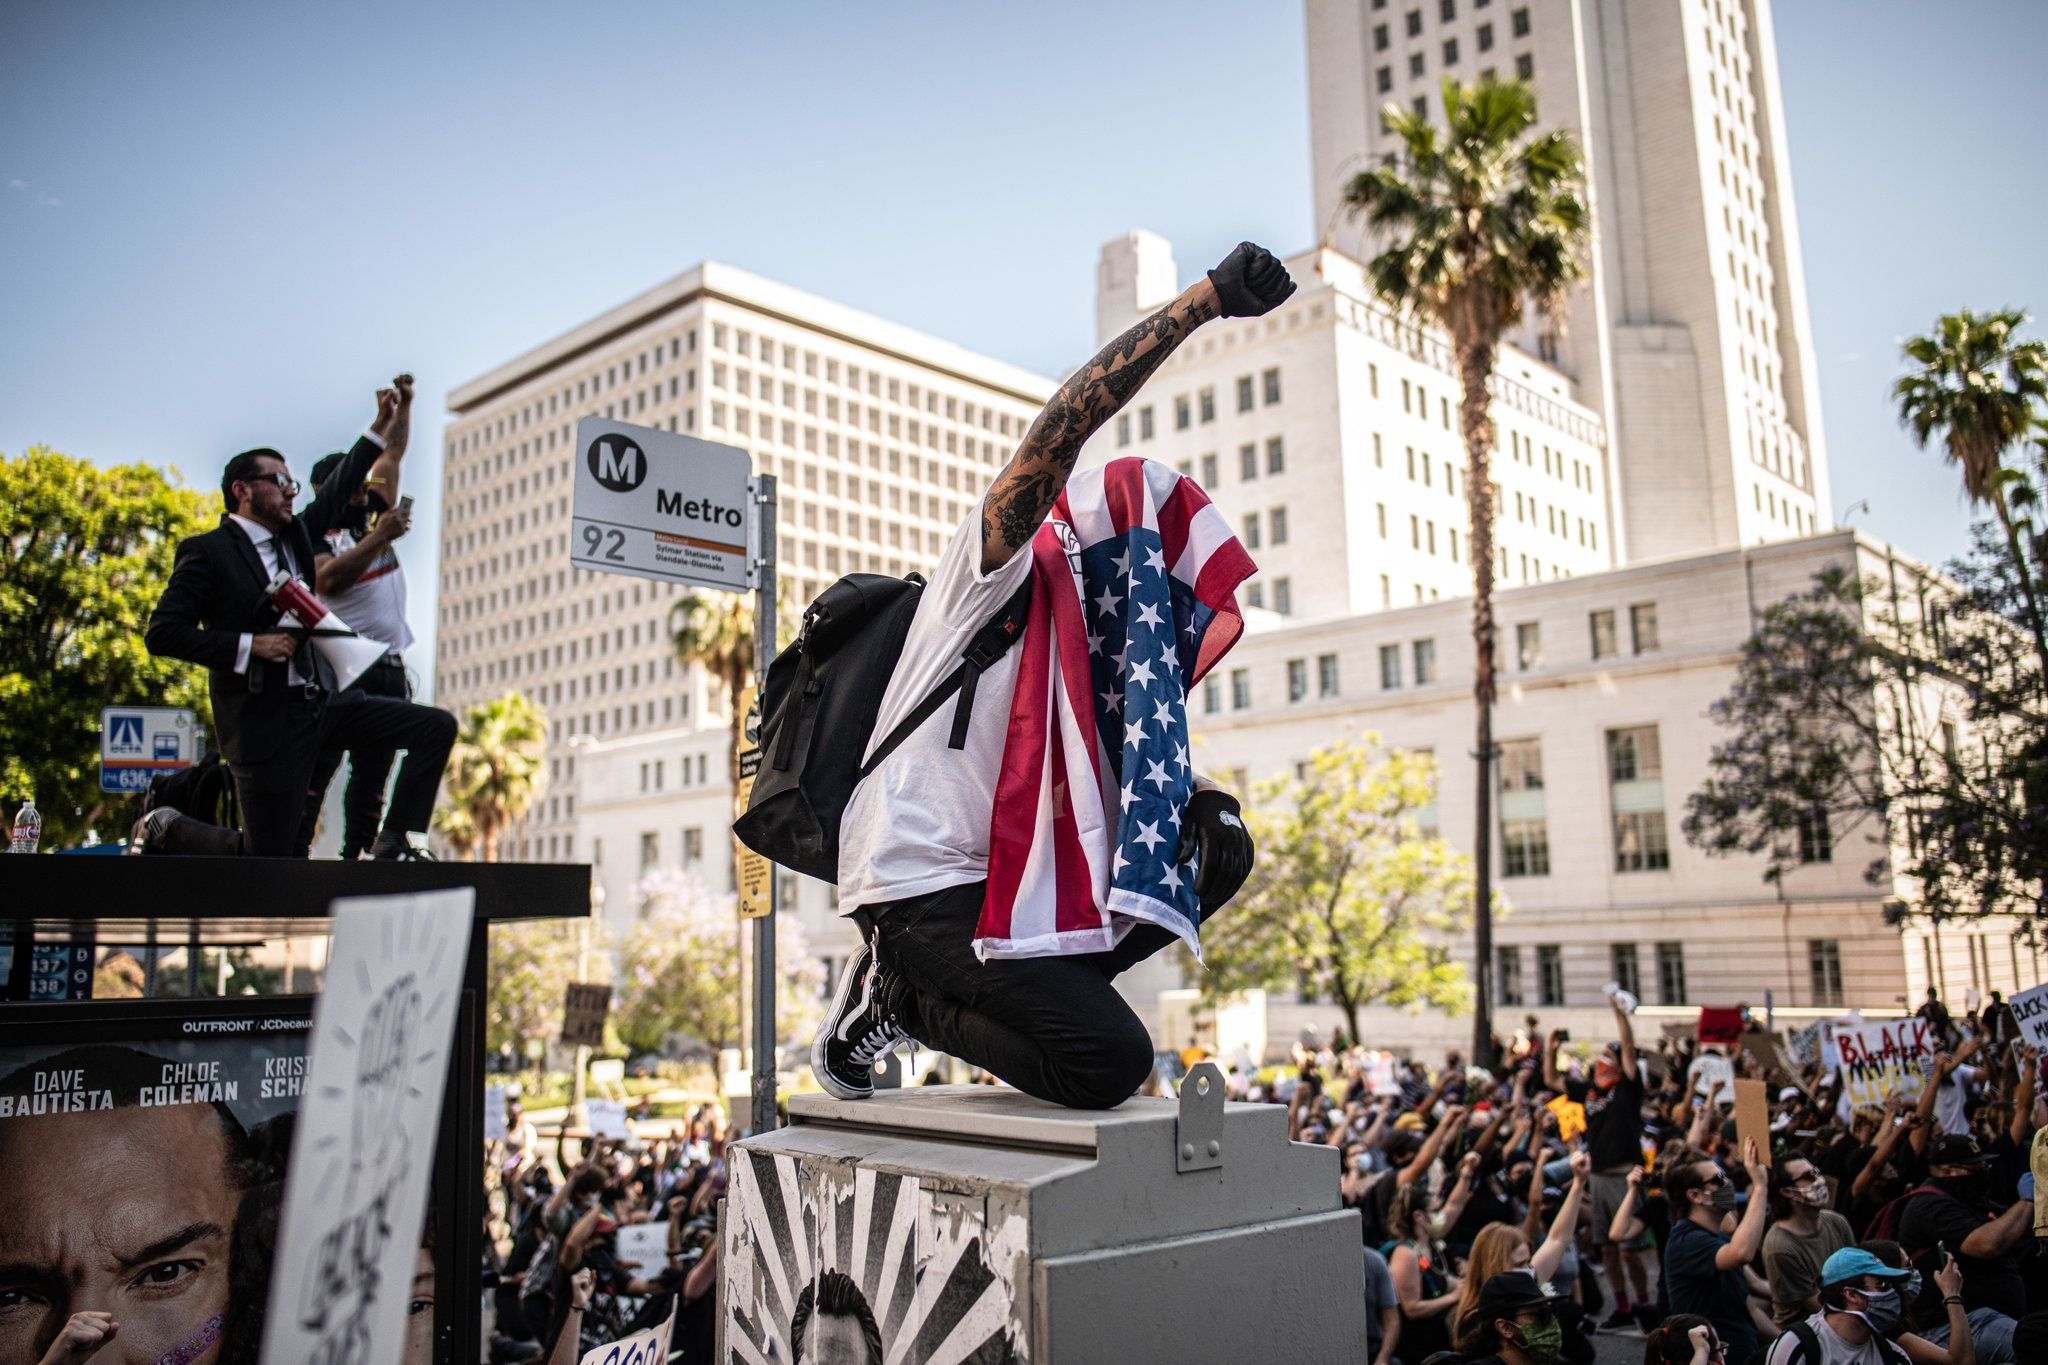 In Photos Protesters March In Cities Across America In 2020 New York Times News Hollywood Location Tulsa World